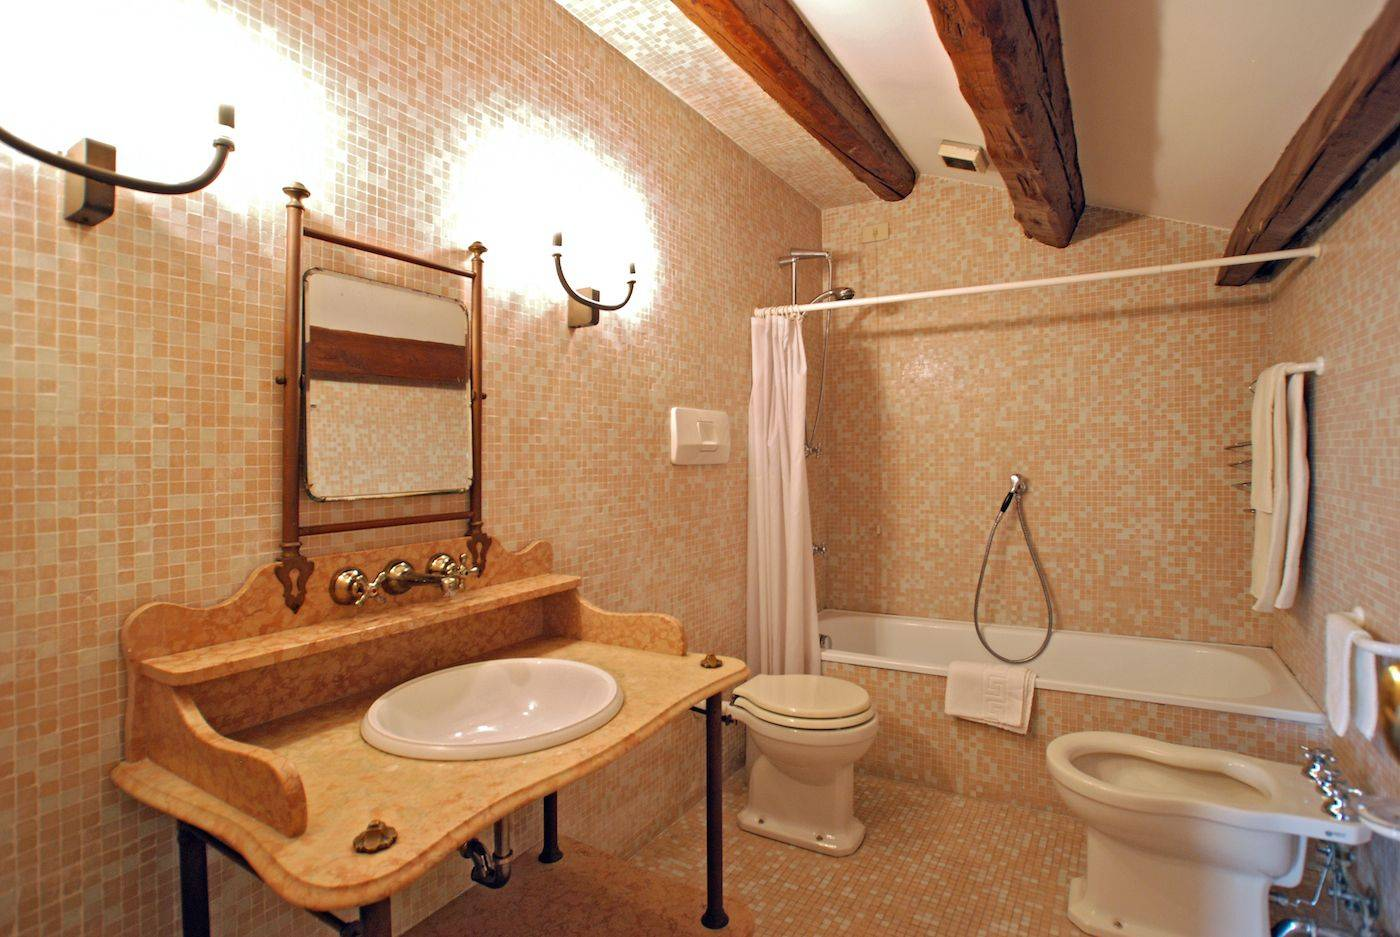 the elegant bathroom of the attic with bathtub and mosaic tiles